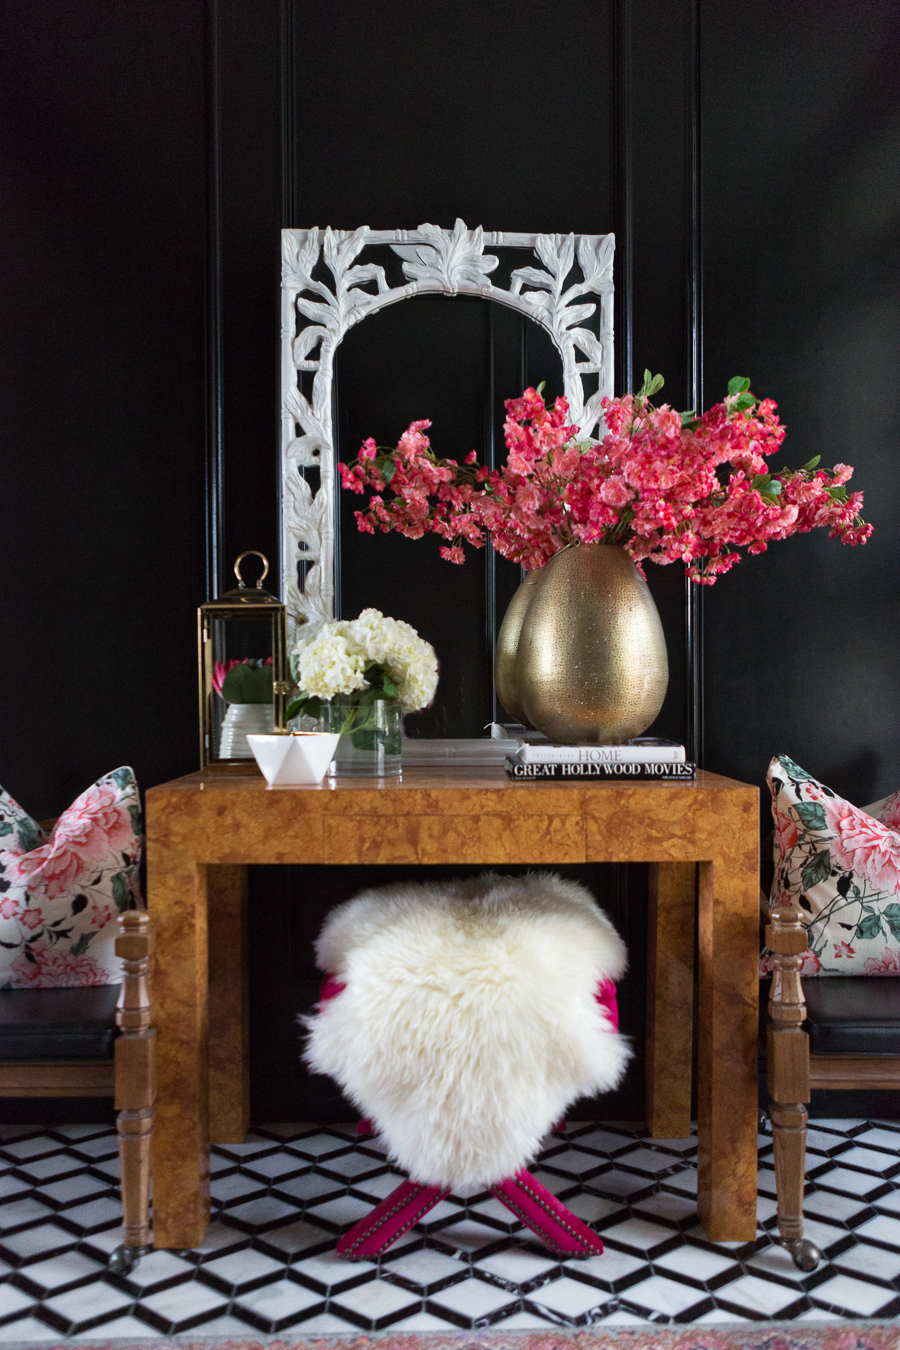 5 Tips to Decorate Your Home with Drew Barrymore Flower Home